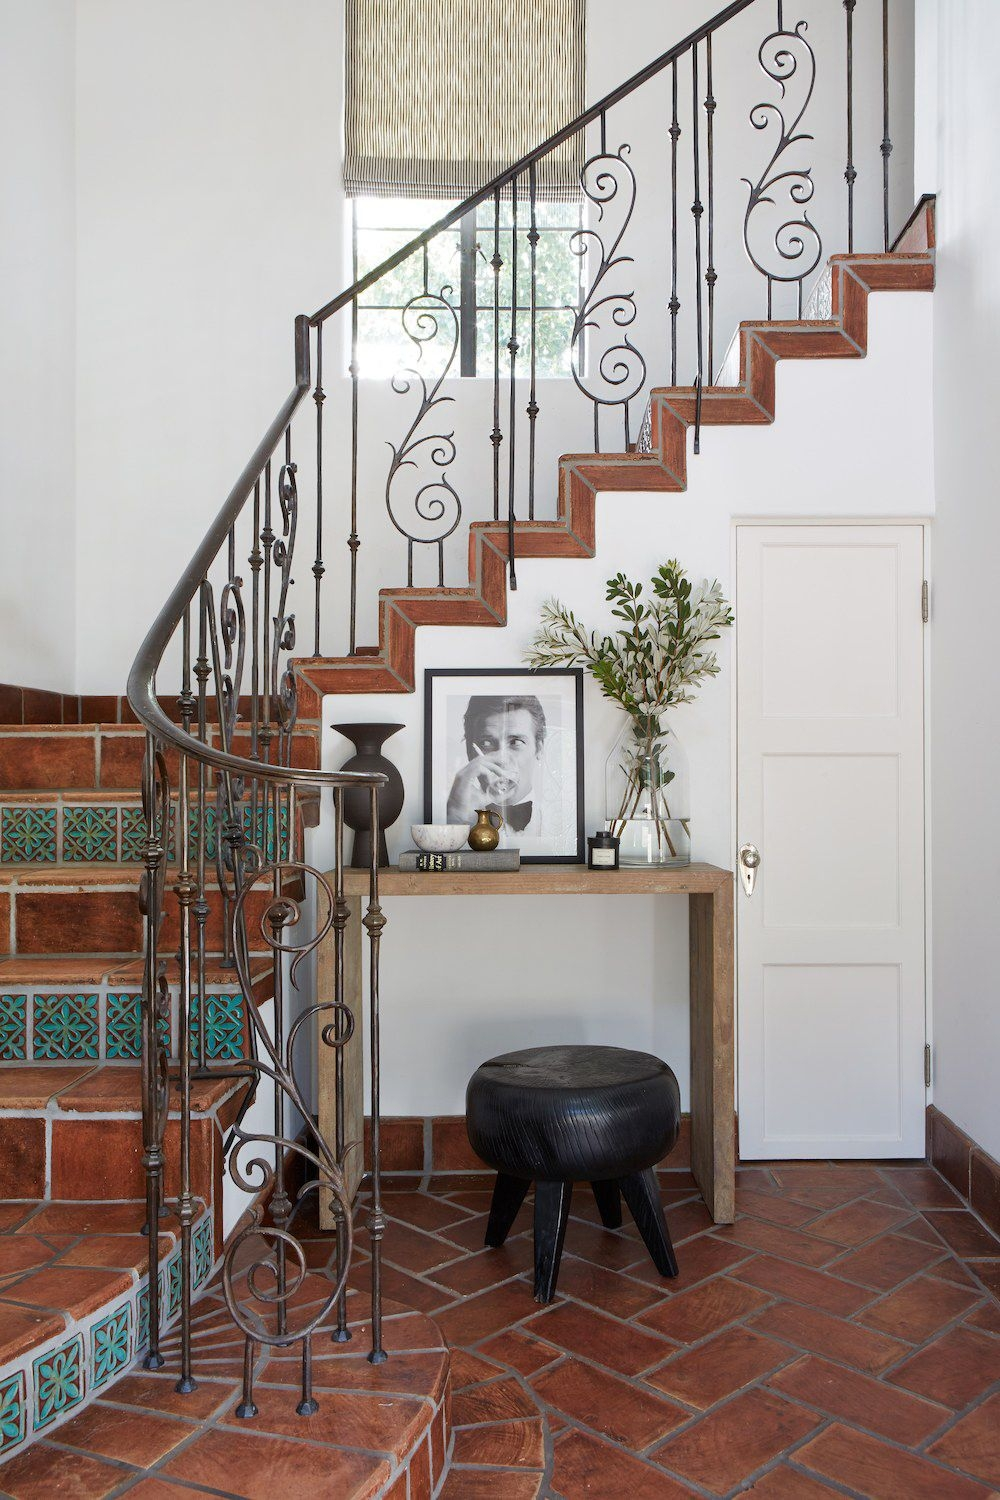 25 Unique Stair Designs Beautiful Stair Ideas For Your House | Front Side Staircase Design | Ground Floor Tower | Gallery Photo Indian | Parapet Wall Front | Italian Type House | Residential Stair Tower